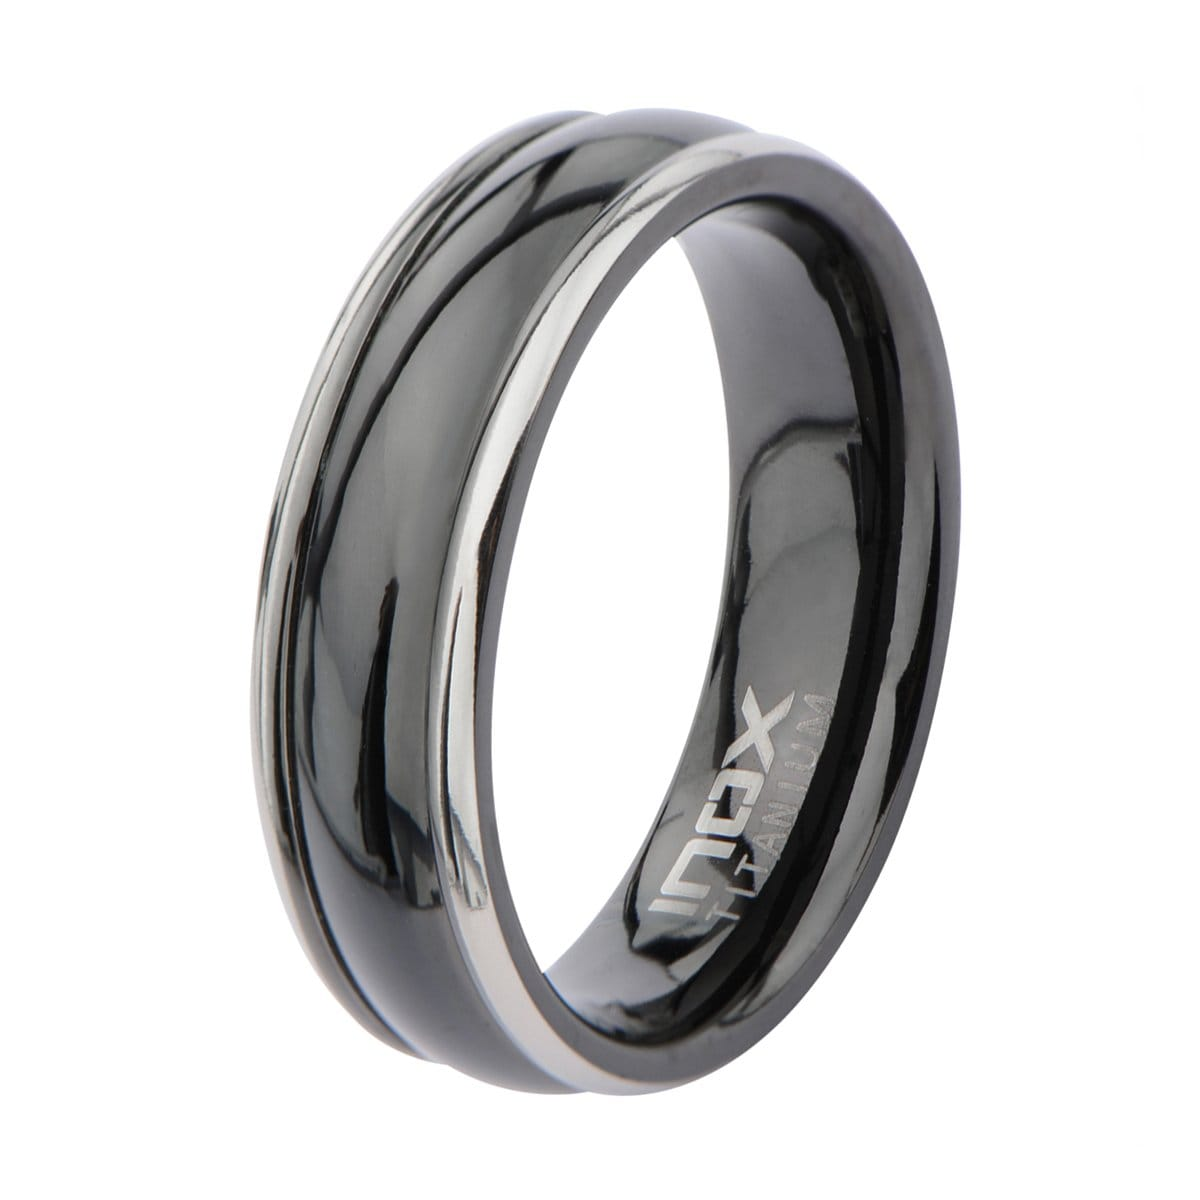 Black Stainless Steel & Silver Titanium Border Glossy Band Rings